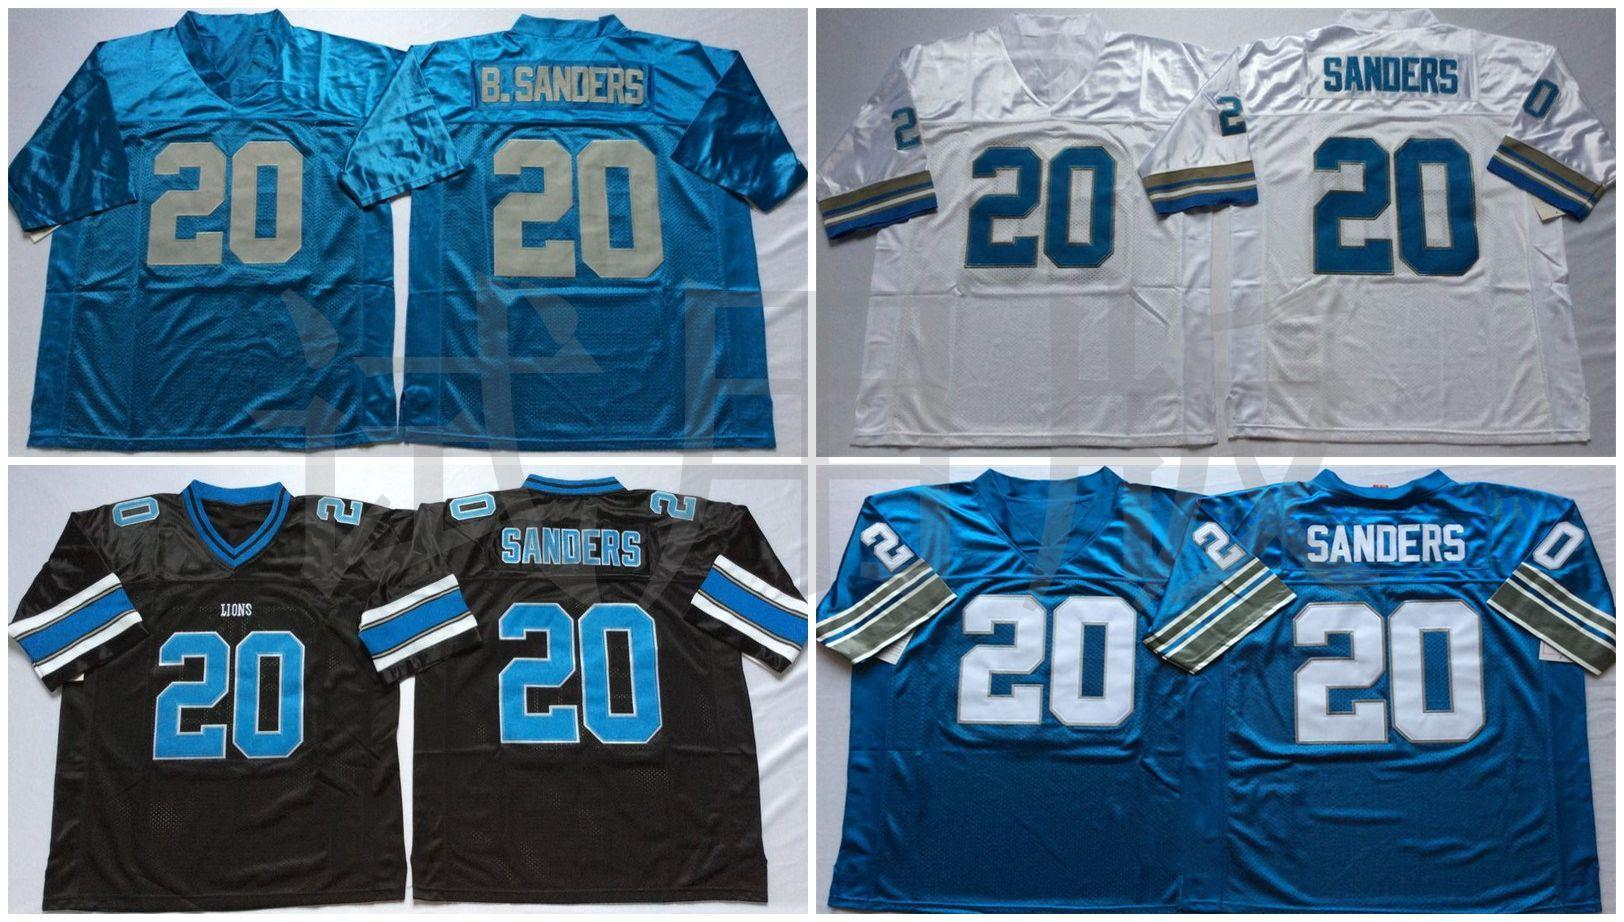 Barry Sanders White Black Blue NCAA Football Jerseys High Quality Quick Dry Breathable Jersey Men Retro Stitched